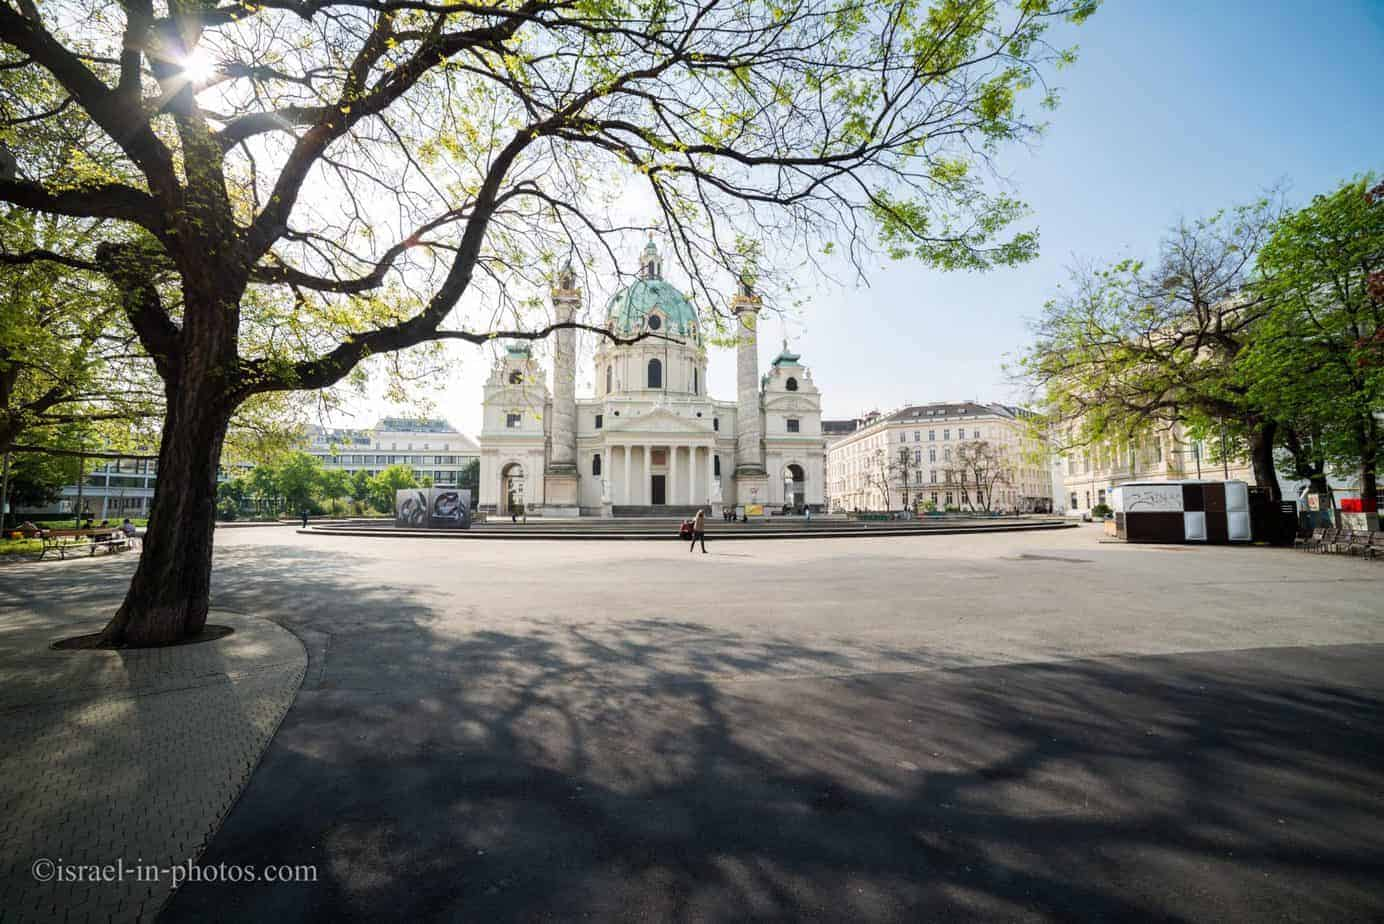 St. Charles's Church Vienna, Austria's capital